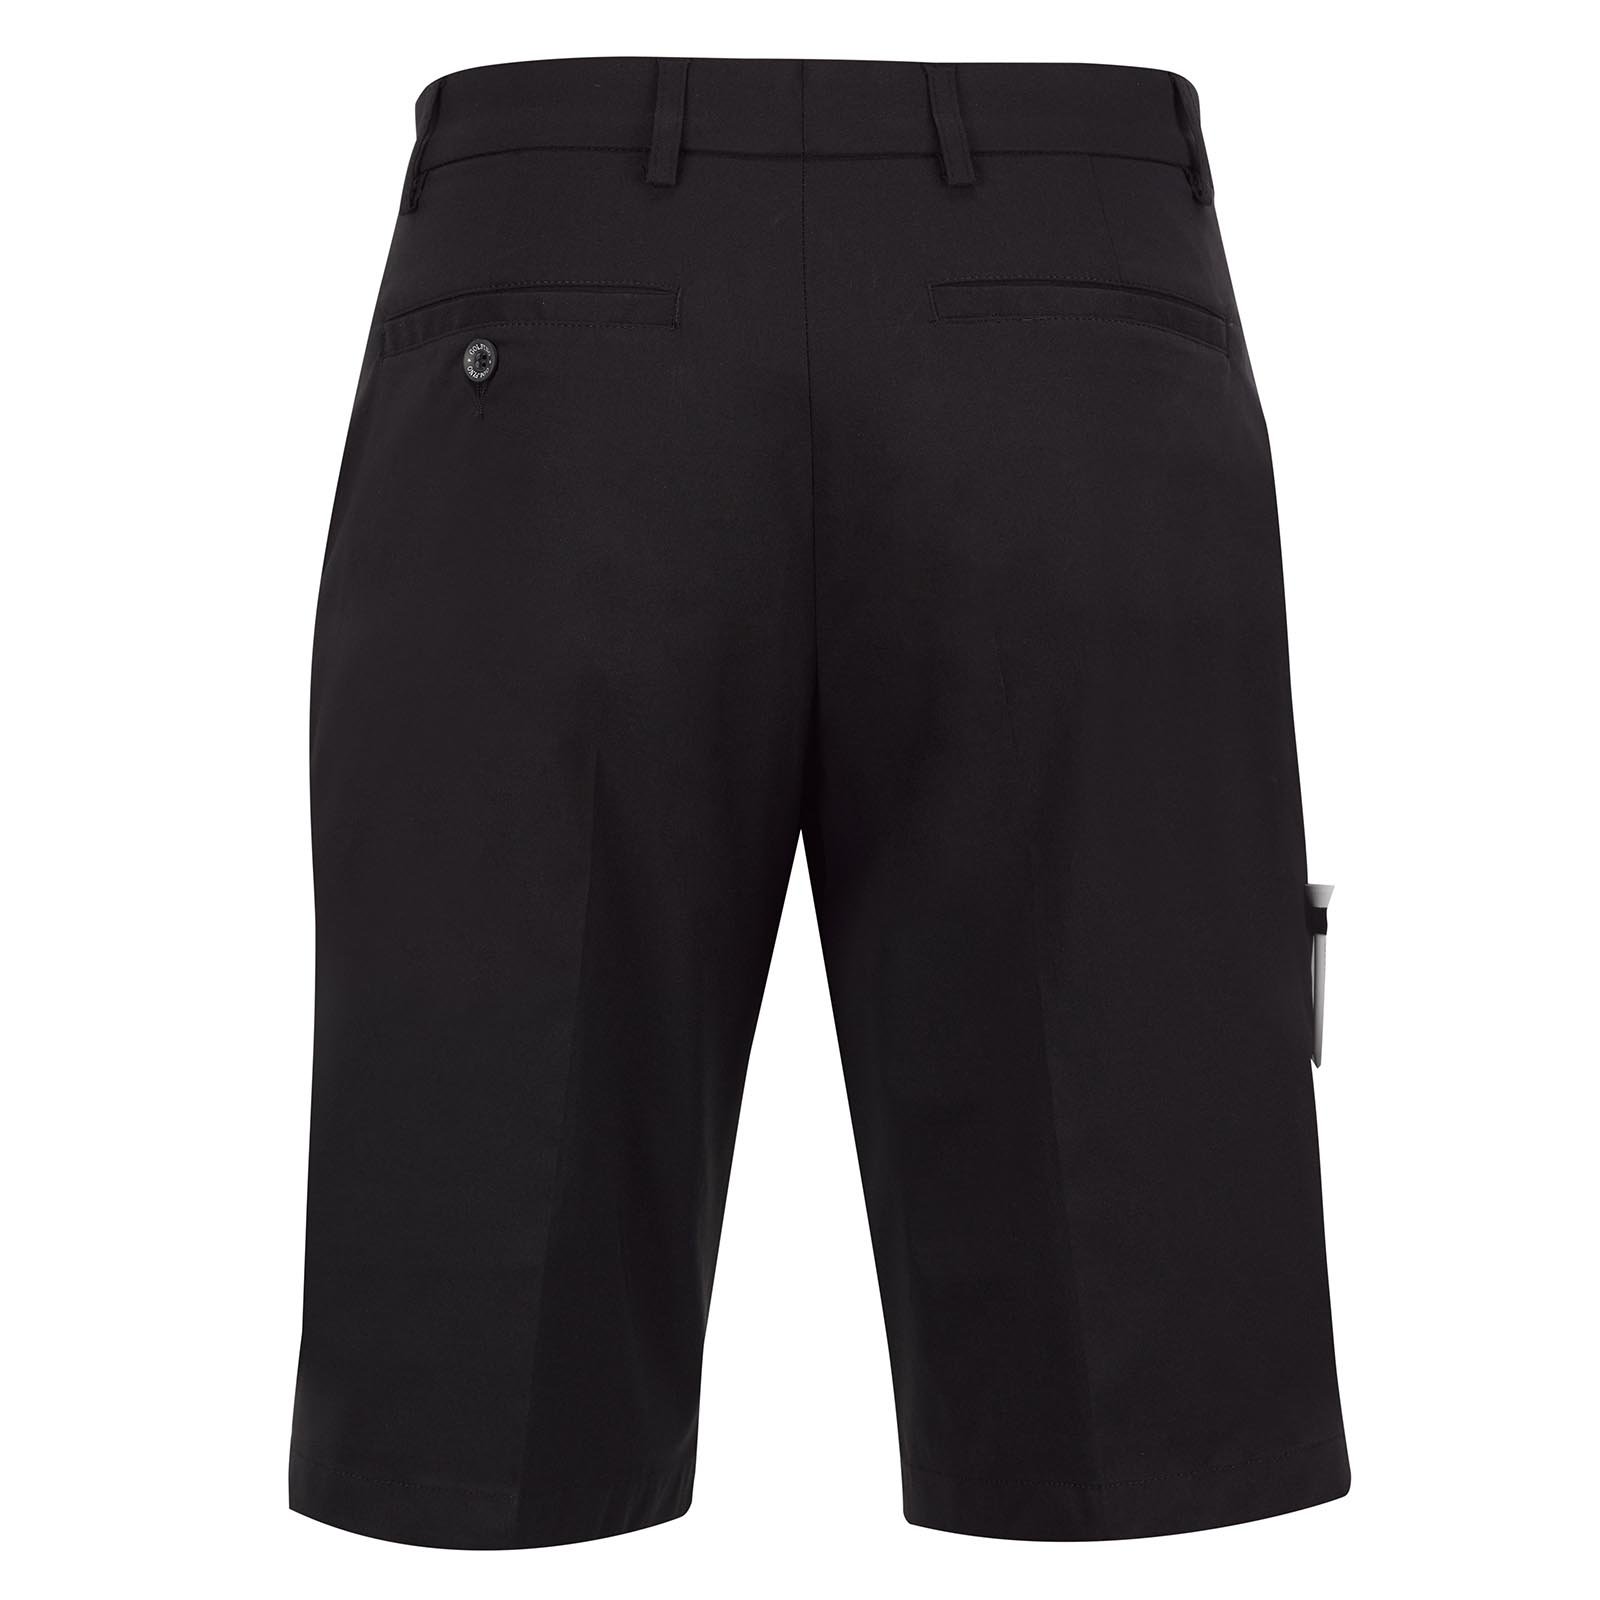 Herren Golfbermuda Techno Stretch Sun Protection in Regular Fit